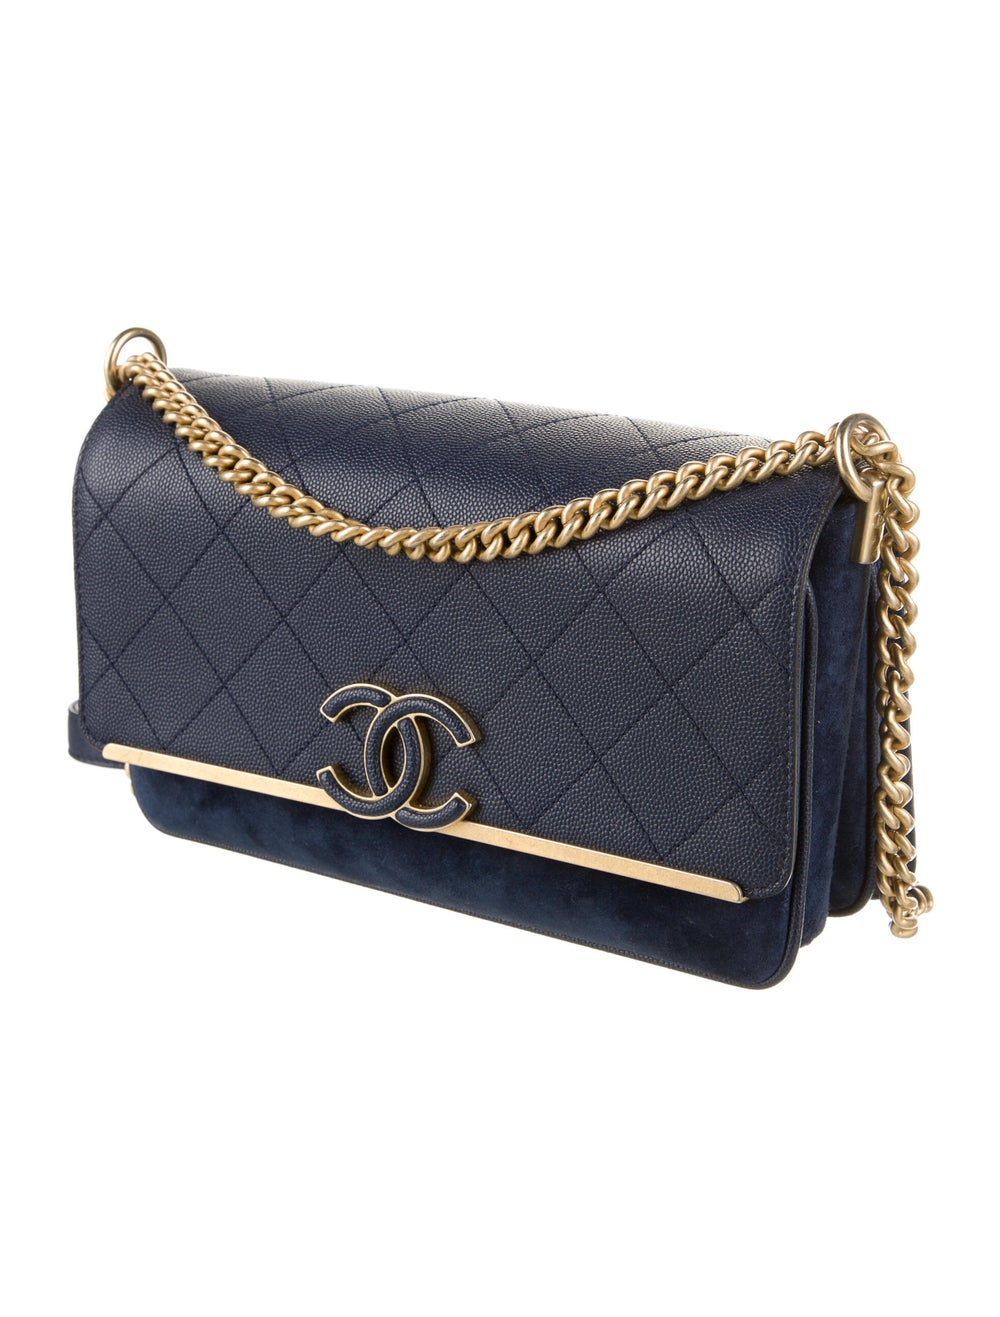 Chanel Chanel Lady Coco Flap Bag Blue - image 3